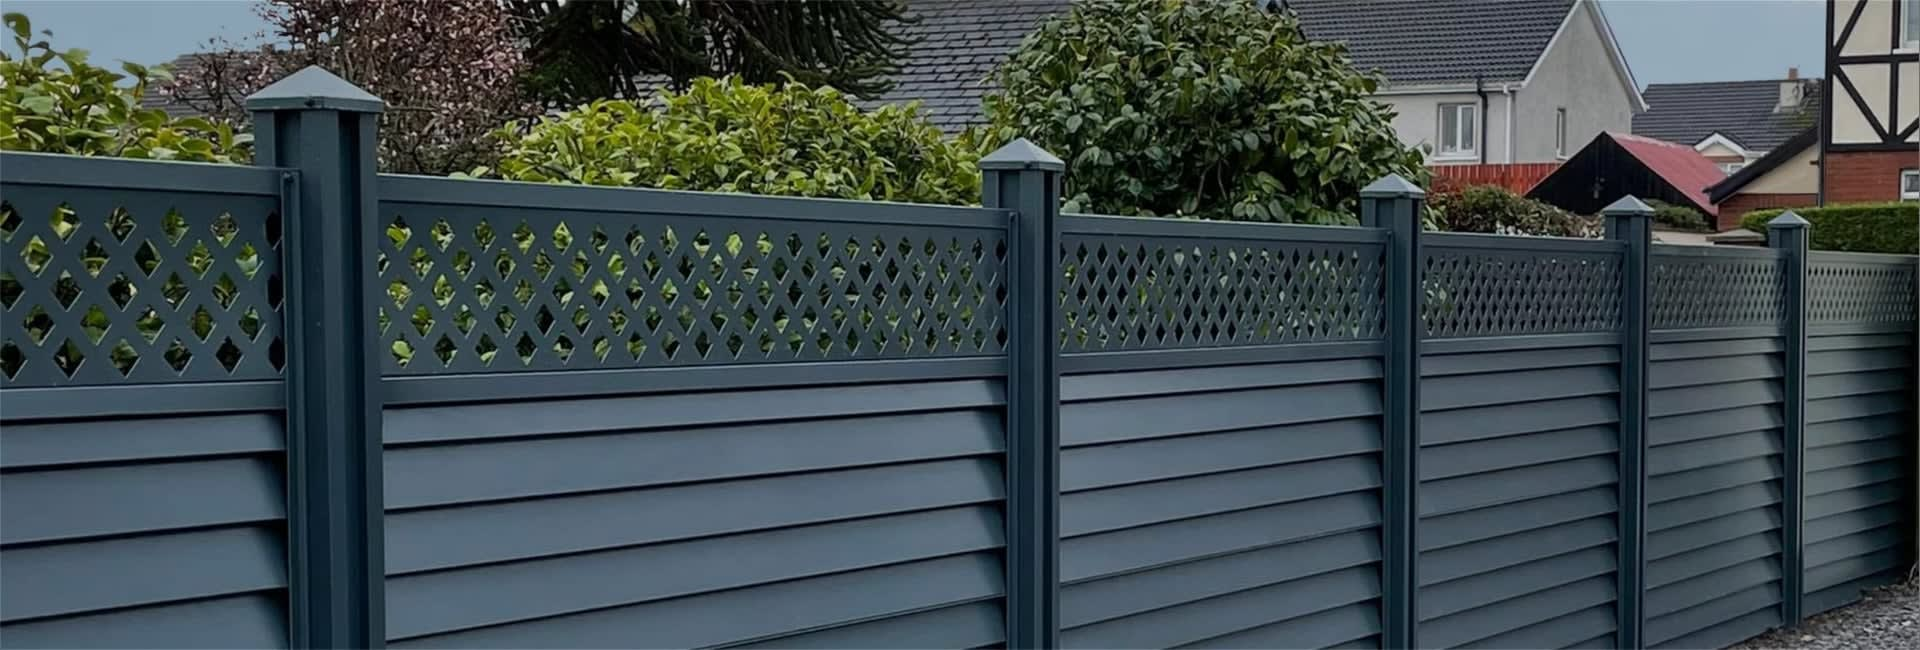 <h2> Durable<br /> Strong &amp; Innovative</h2> <p> Maintenance Free Colour Coated<br /> Steel Garden Fence</p>